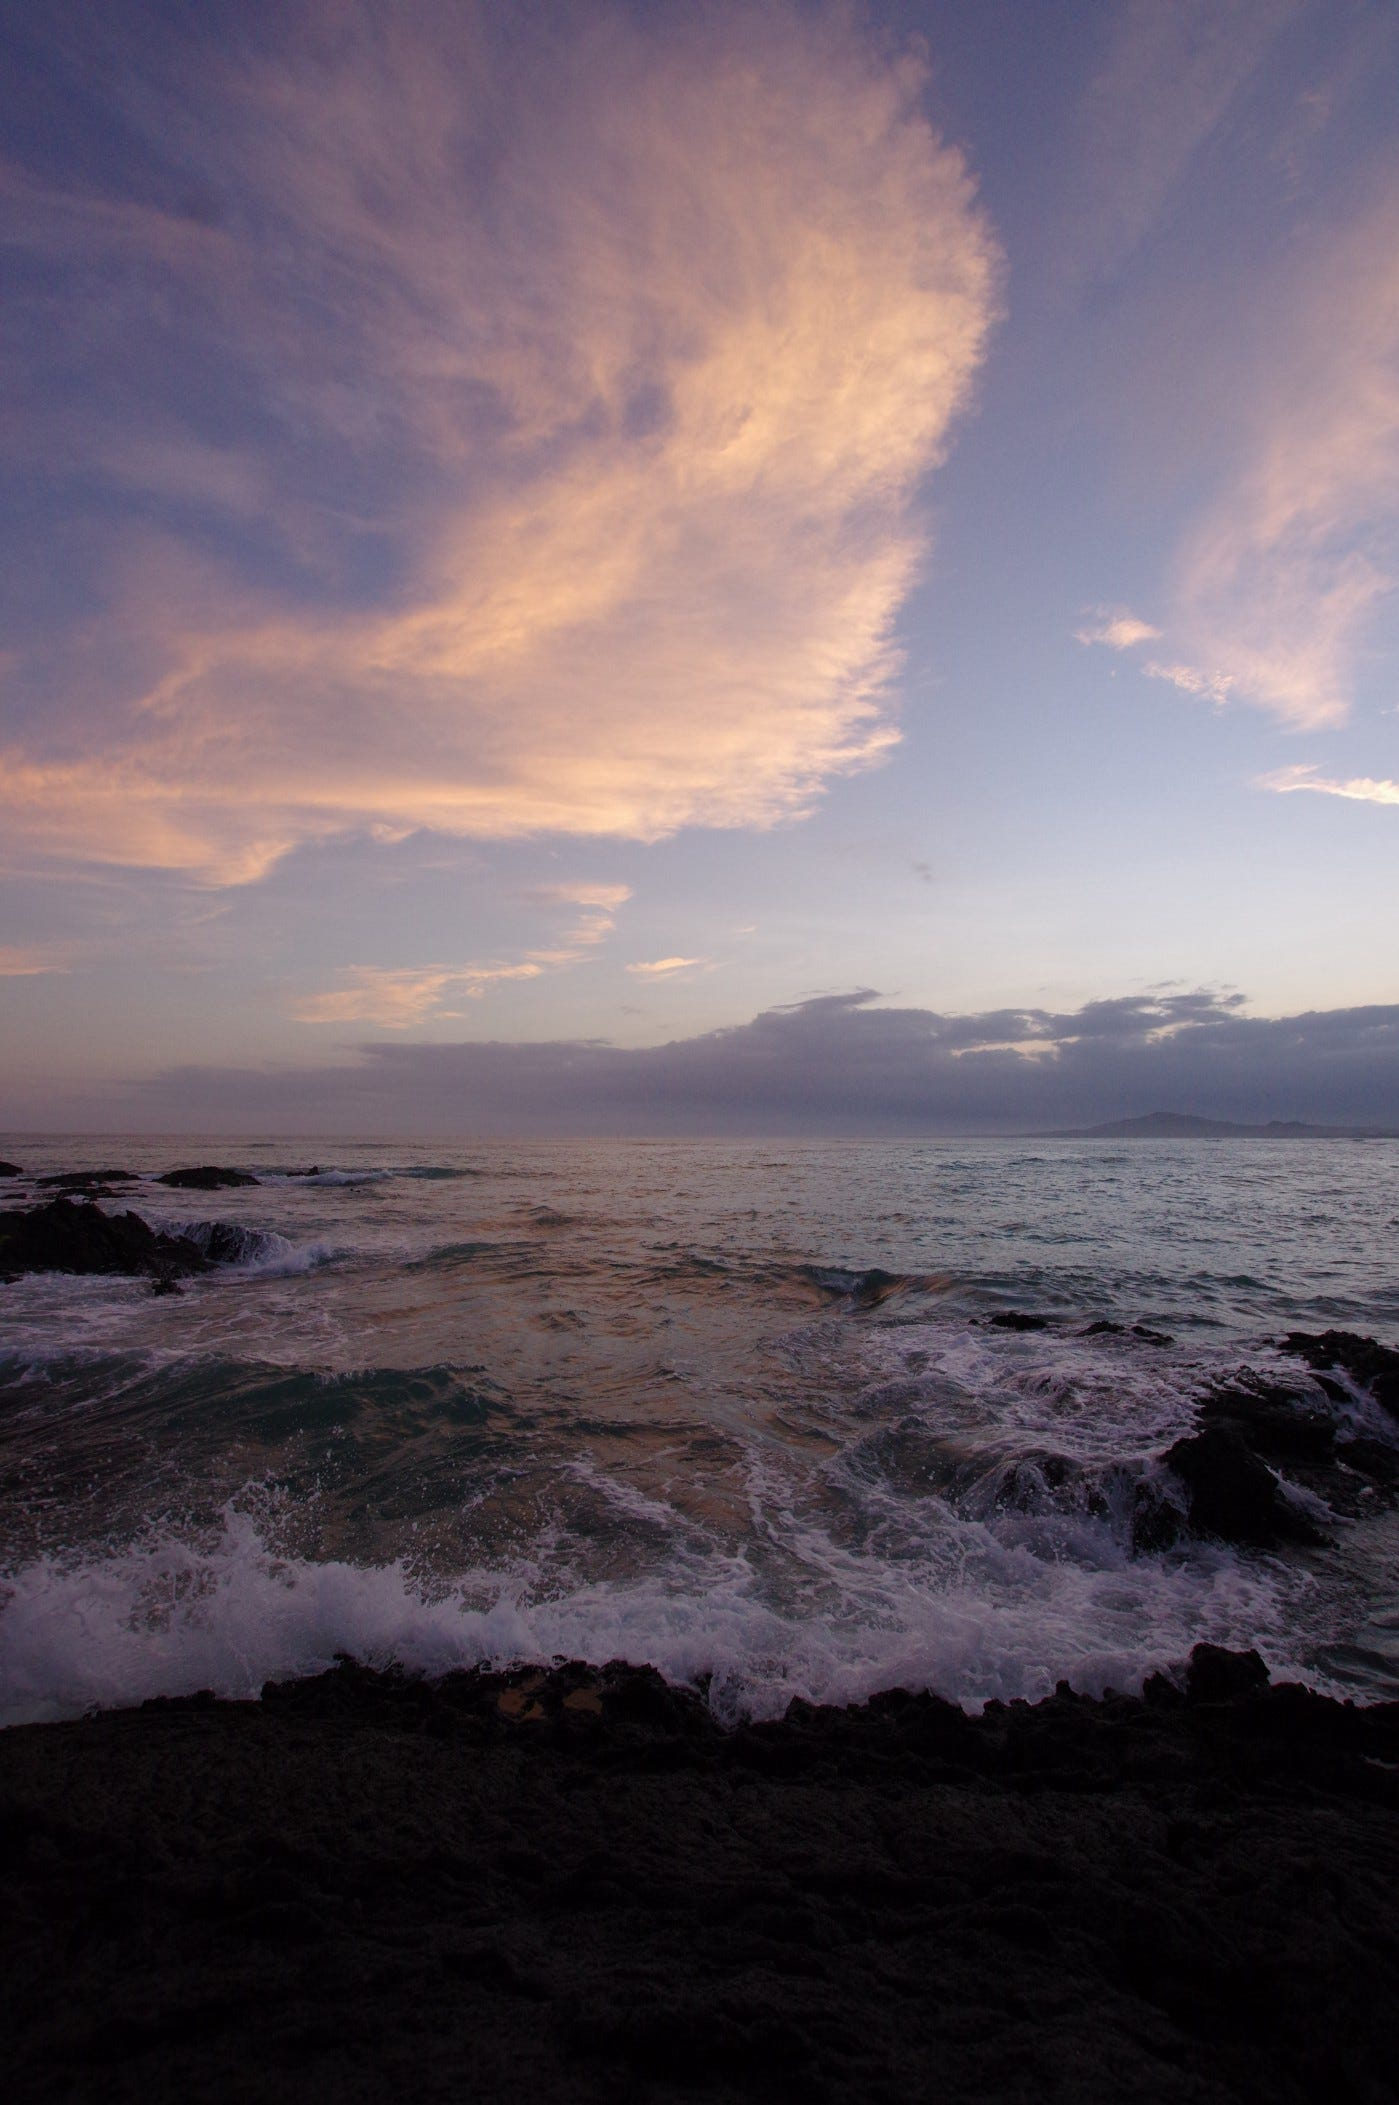 Sky over the Pacific on the Galápagos. Photo by Heather, 4/1/16